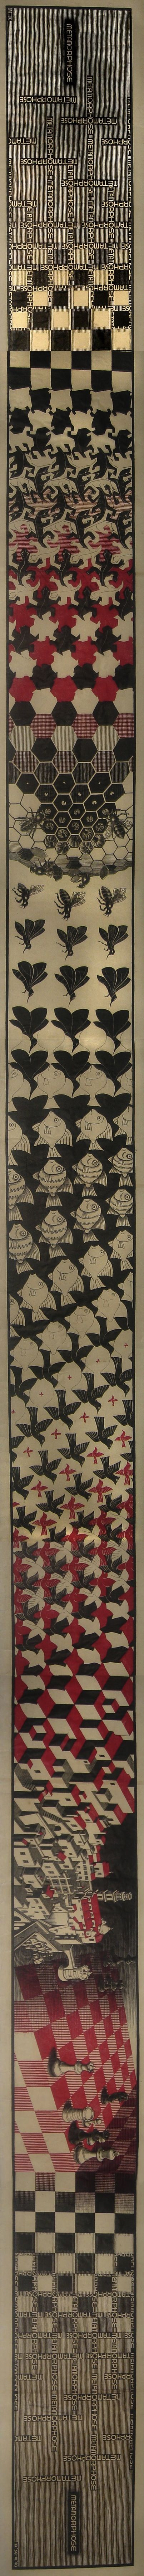 Metamorphosis II by M.C. Escher